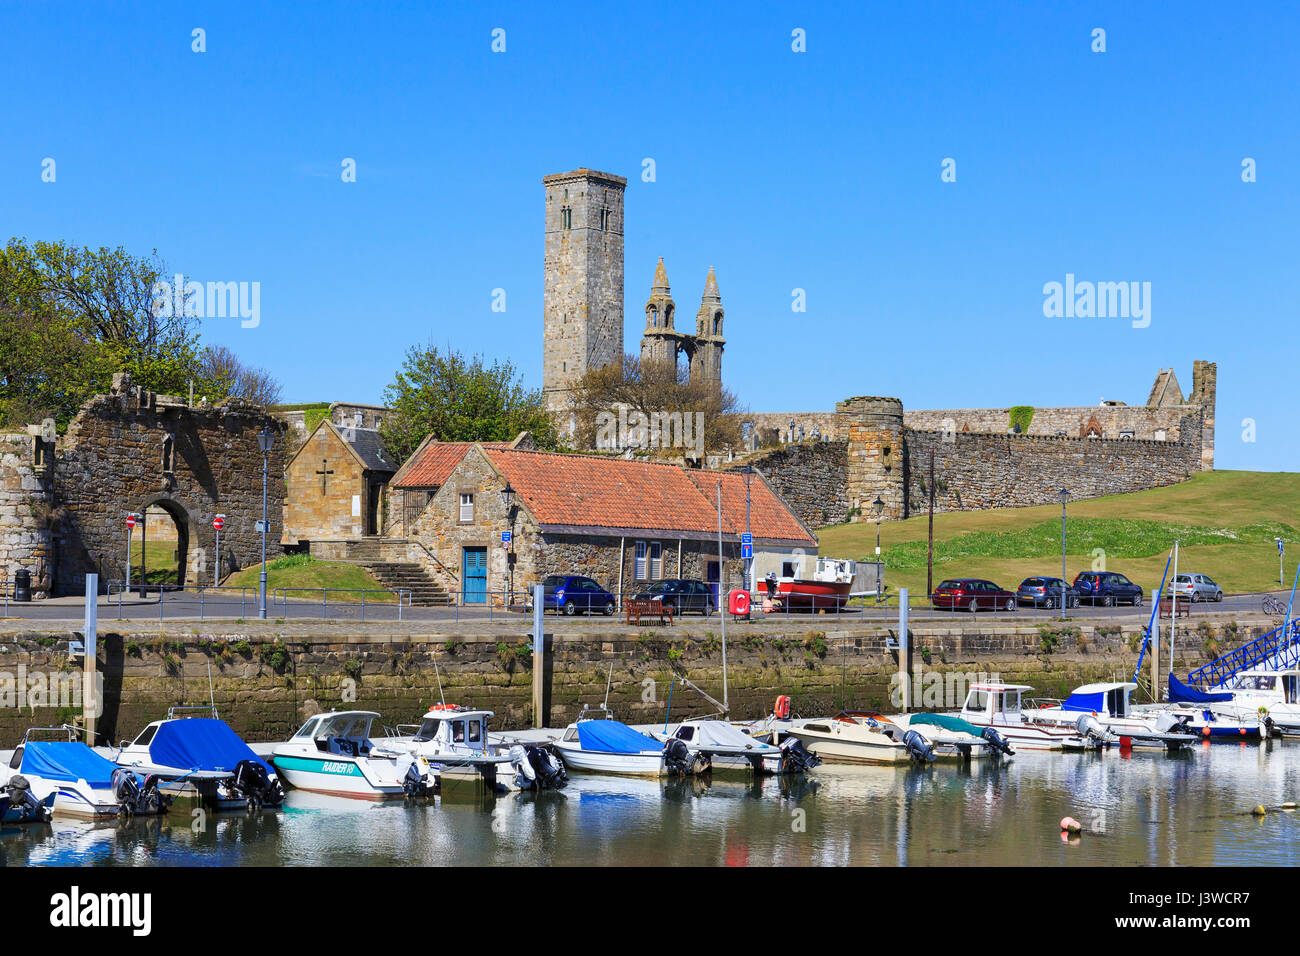 Harbour at St Andrews, Fife, Scotland - Stock Image